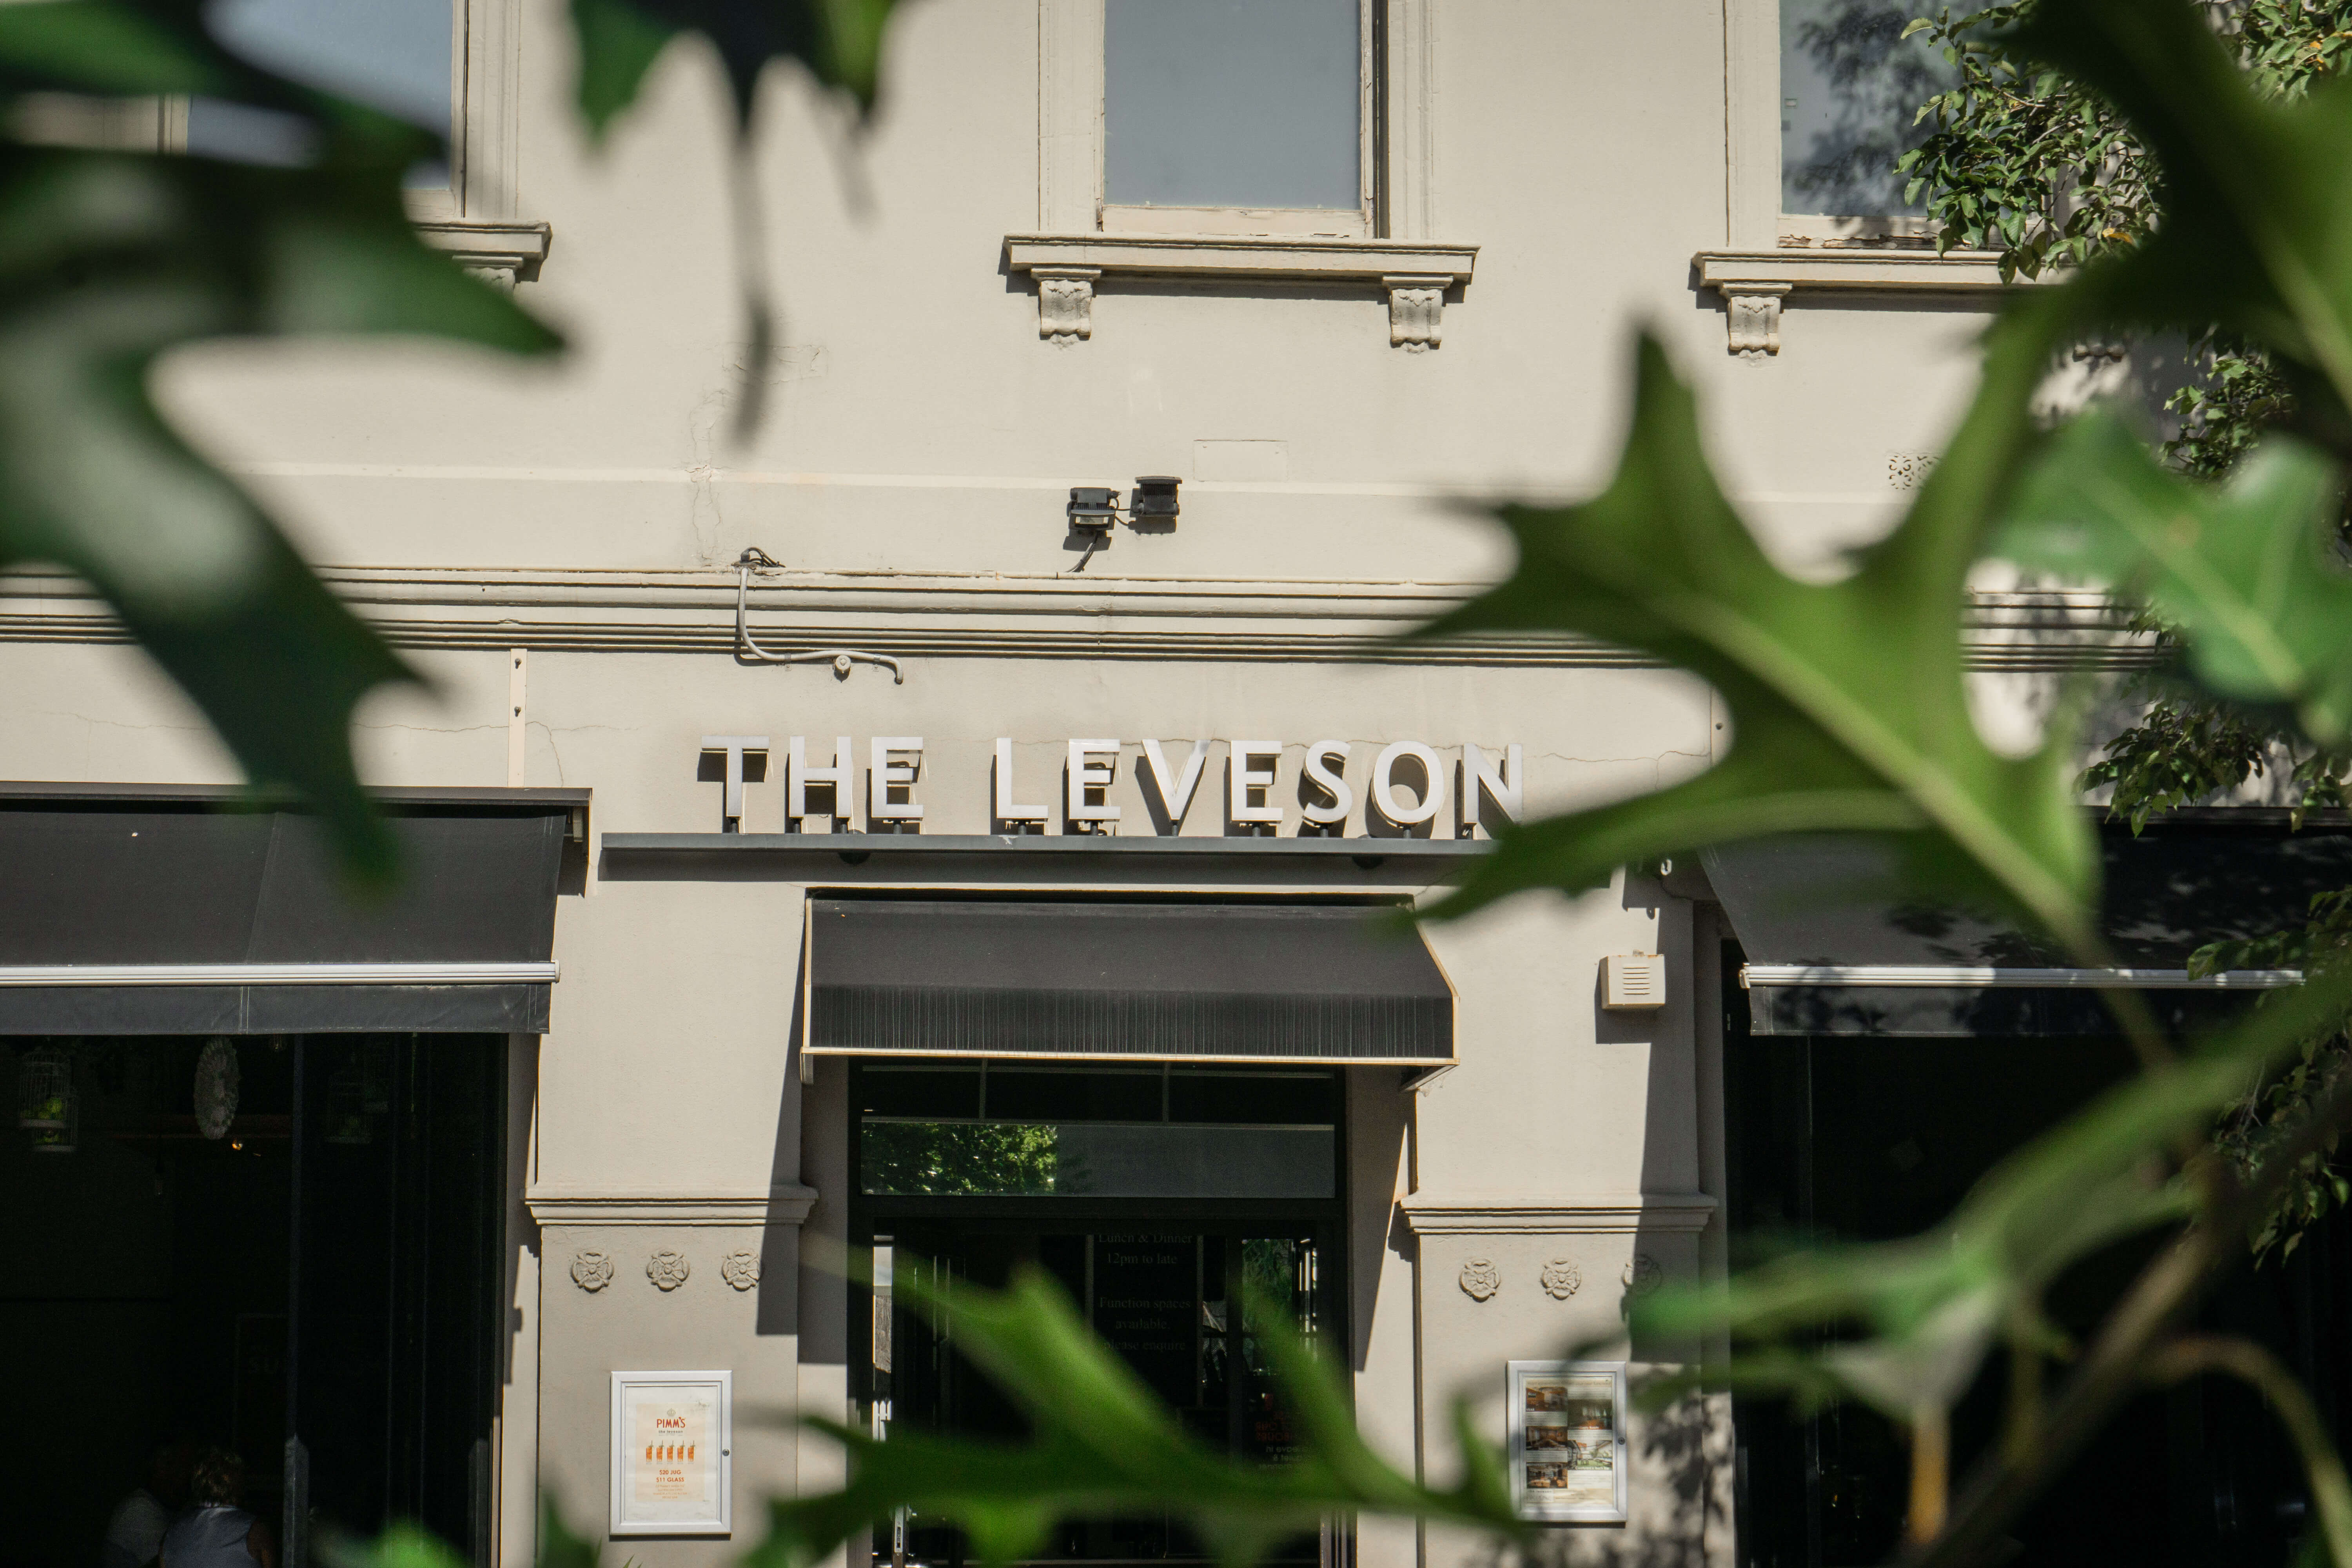 The Leveson_05050